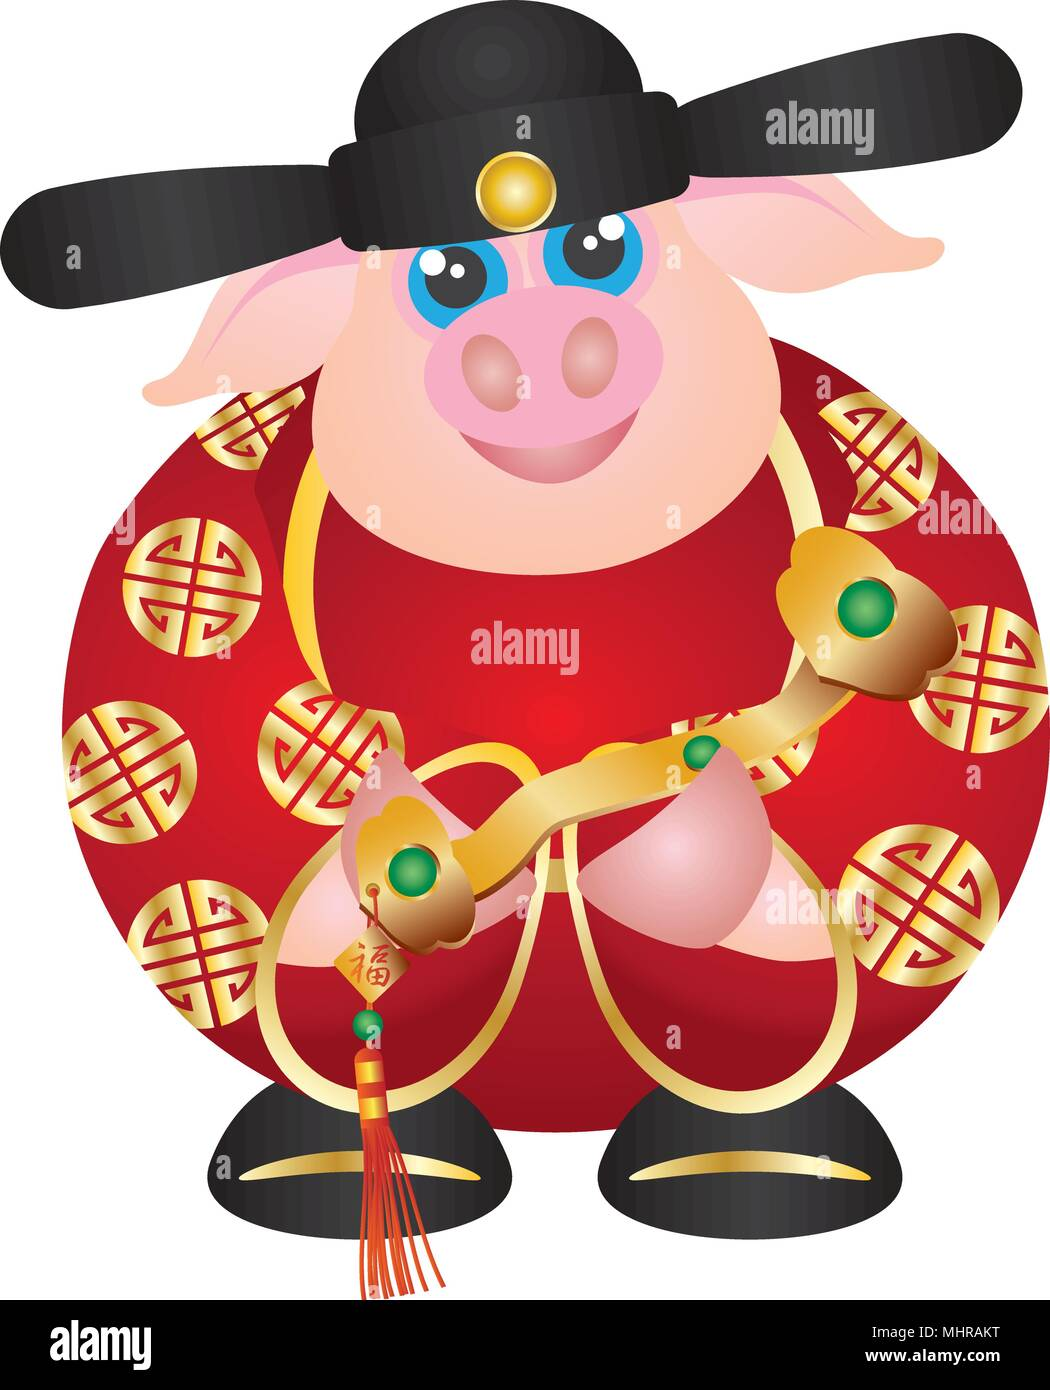 2019 happy chinese lunar new year of the pig prosperity money god holding ruyi scepter with prosperity text illustration on white background